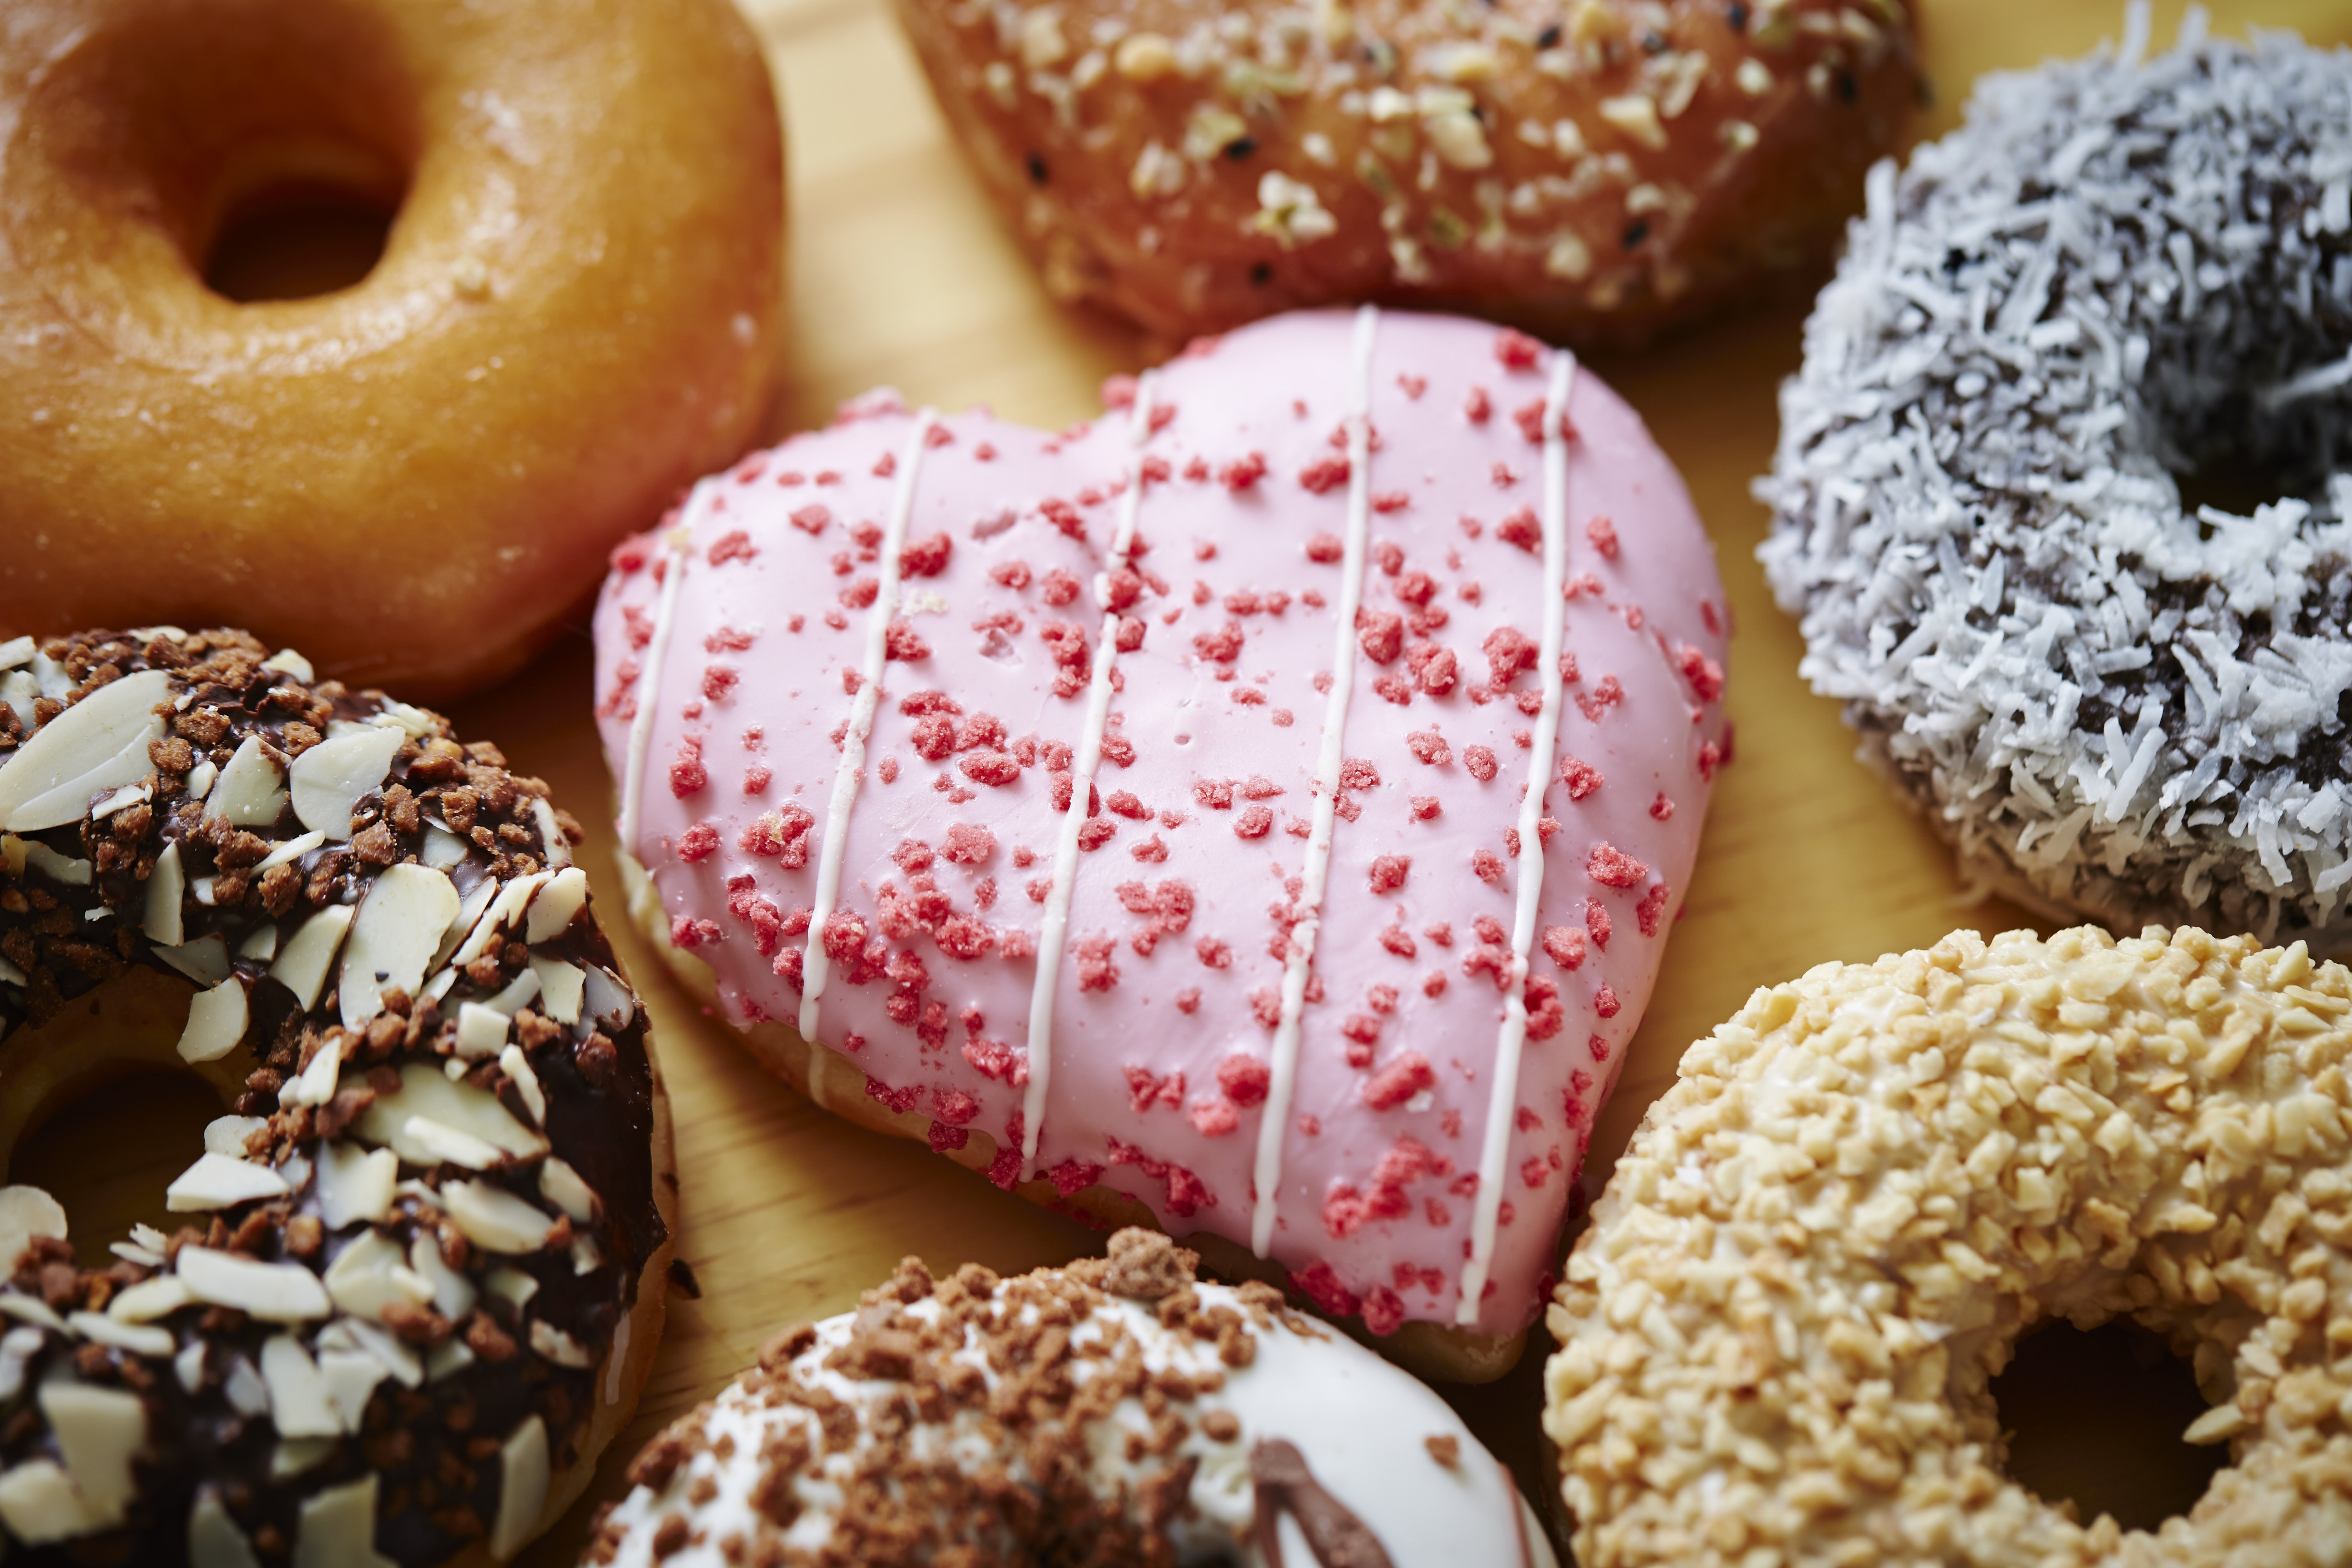 Top 5 Worst Foods for Your Heart, According to a Dietitian